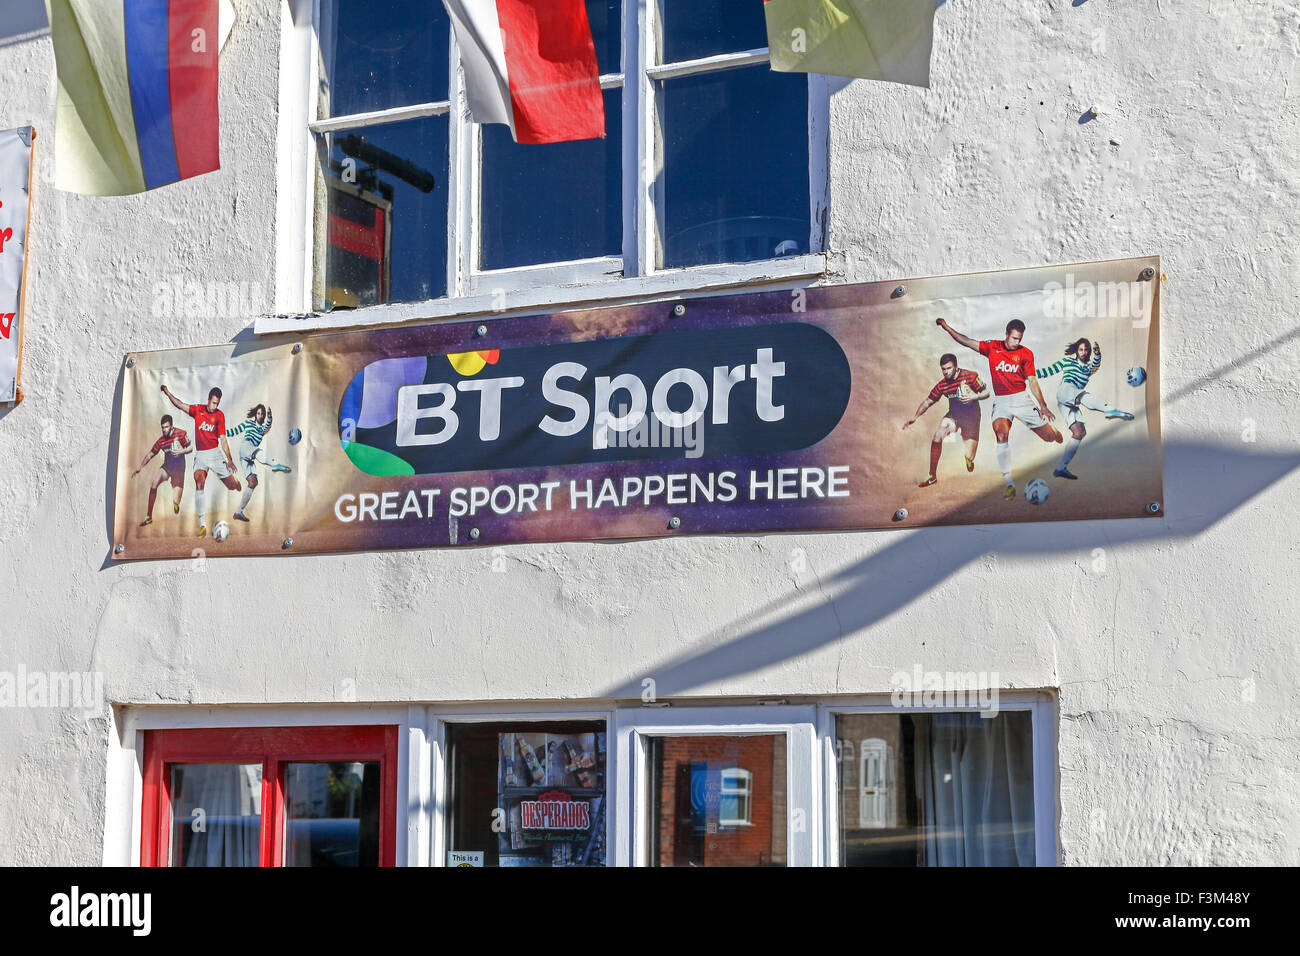 A sign on a pub or public house saying bt sport shown here - Stock Image